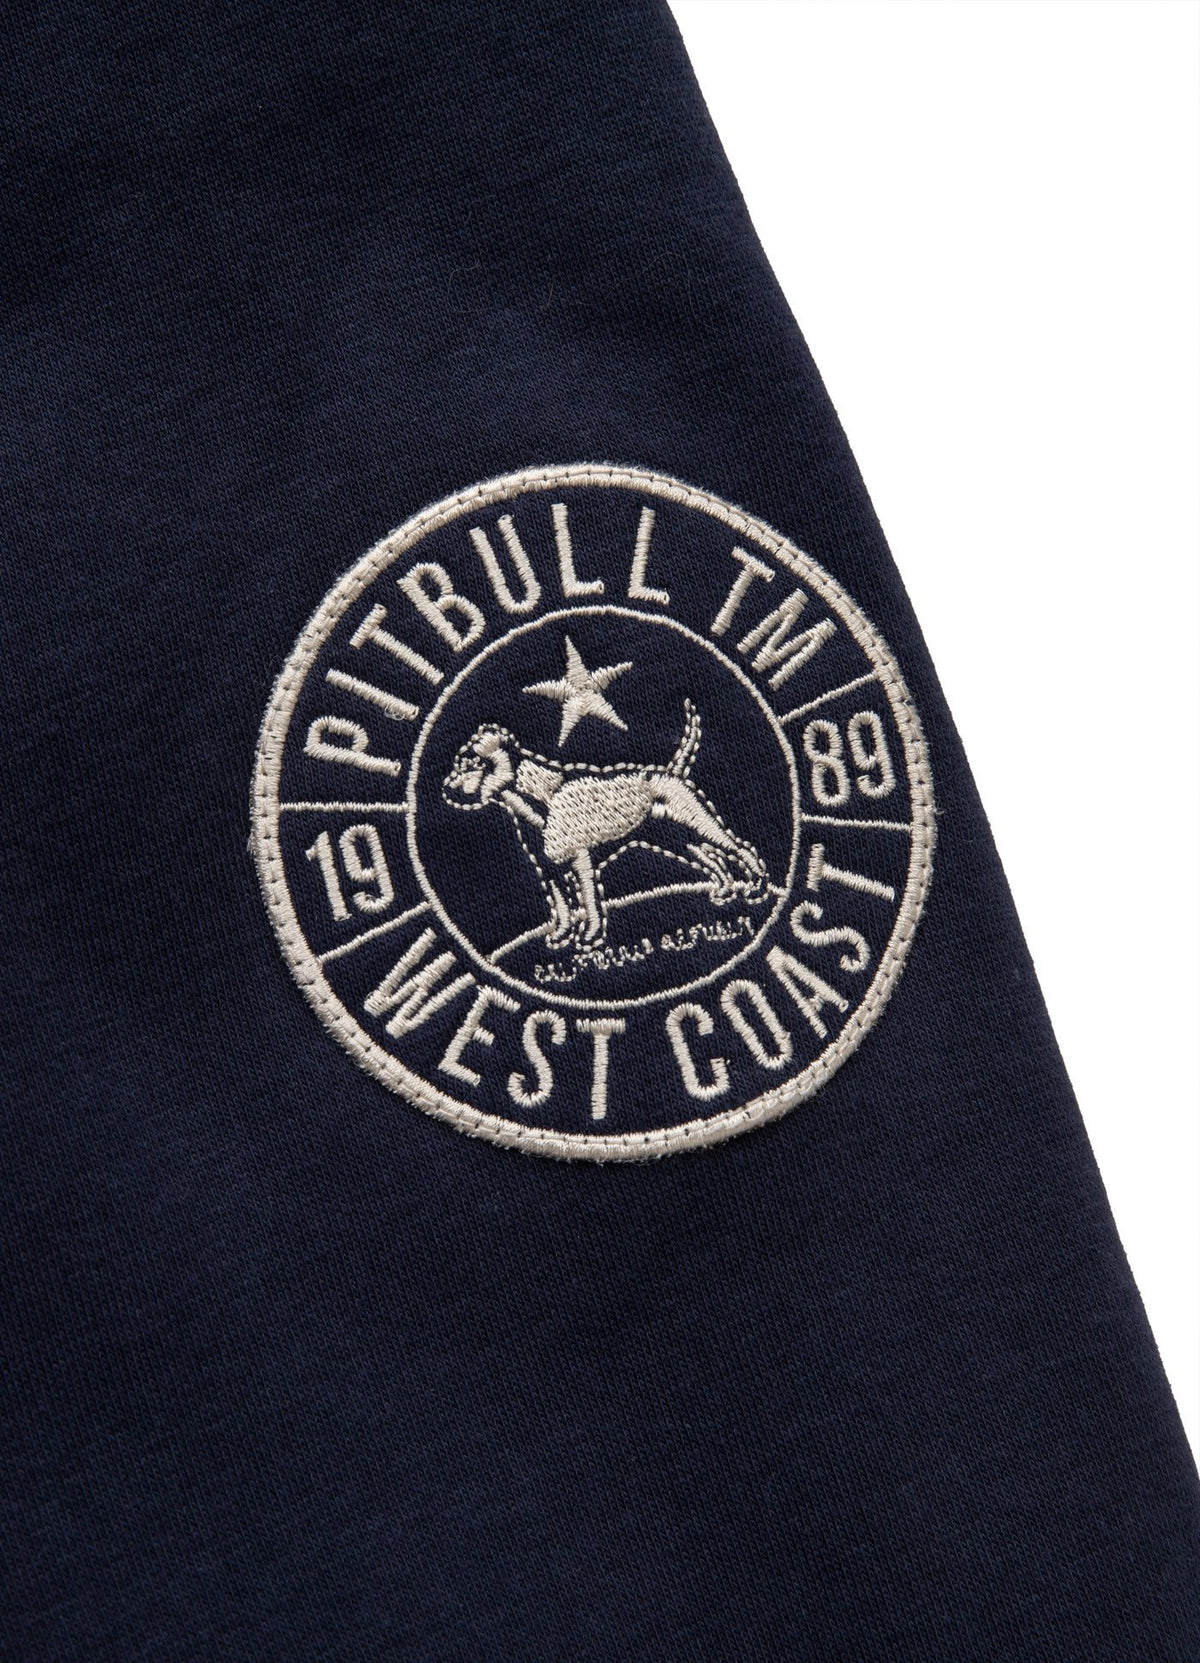 Hooded Sweatjacket SHERPA RUFFIN Dark Navy - Pitbull West Coast U.S.A.